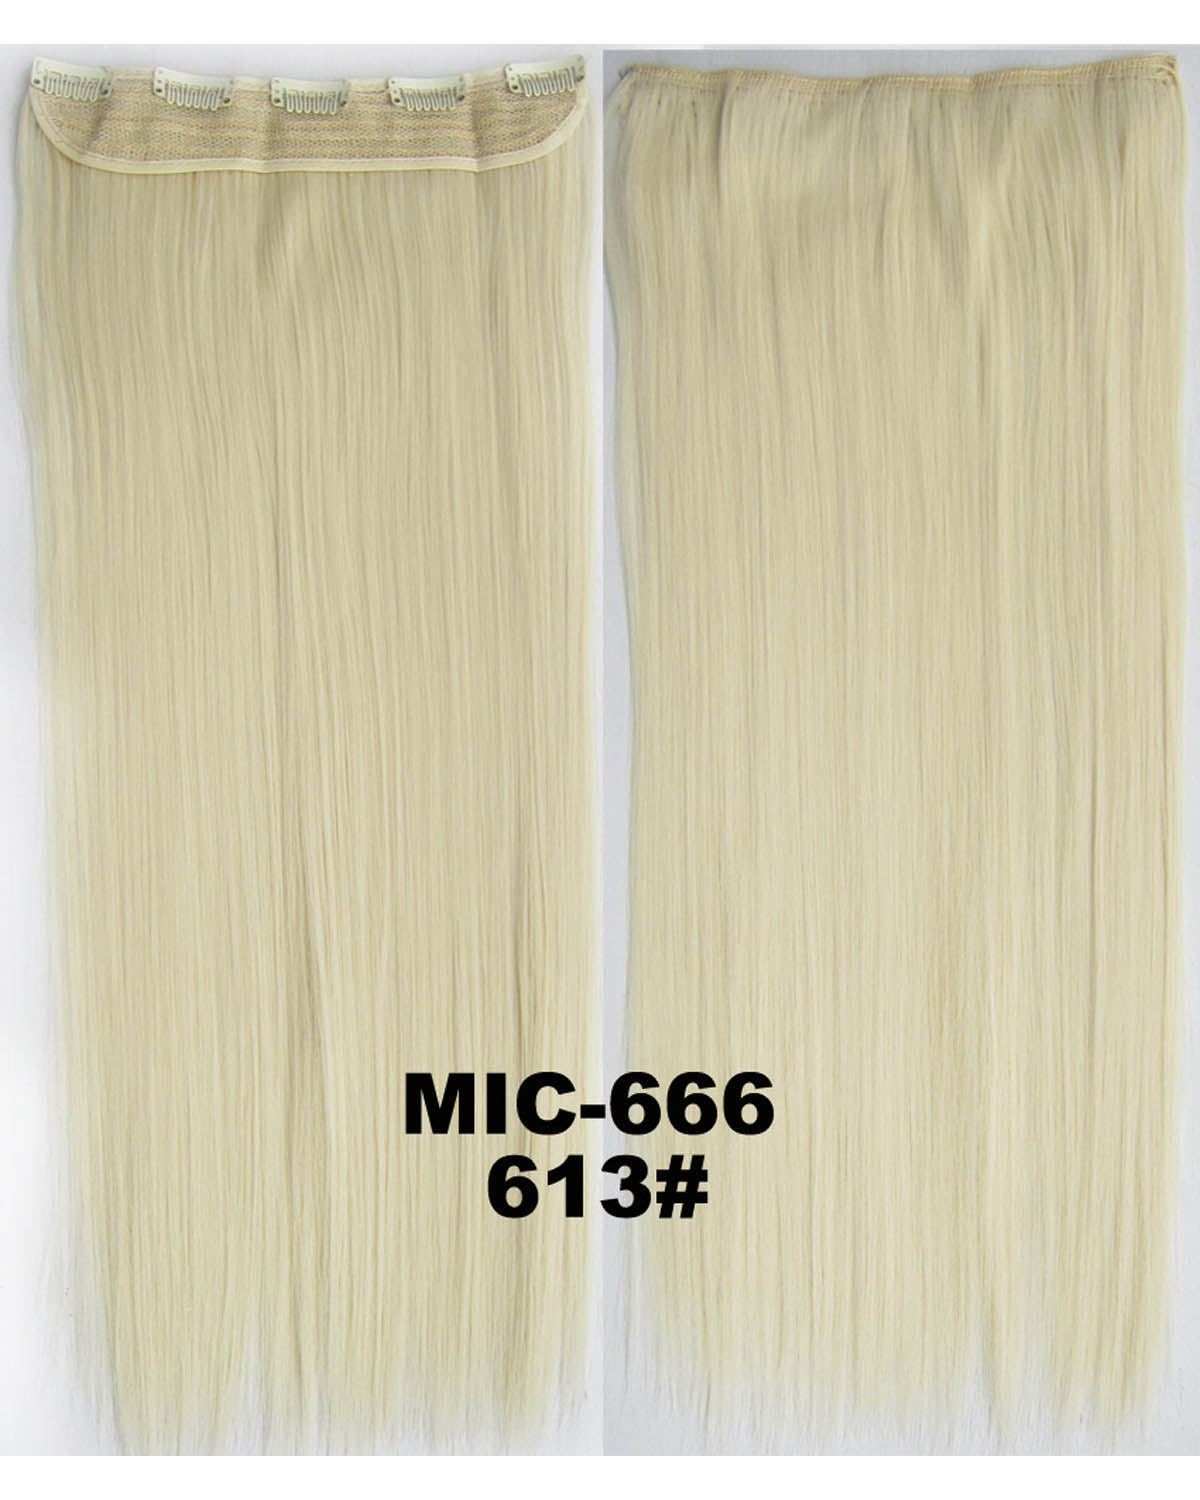 24 inch Fine Straight Long One Piece 5 Clips Clip in Synthetic Hair Extension 613#100g